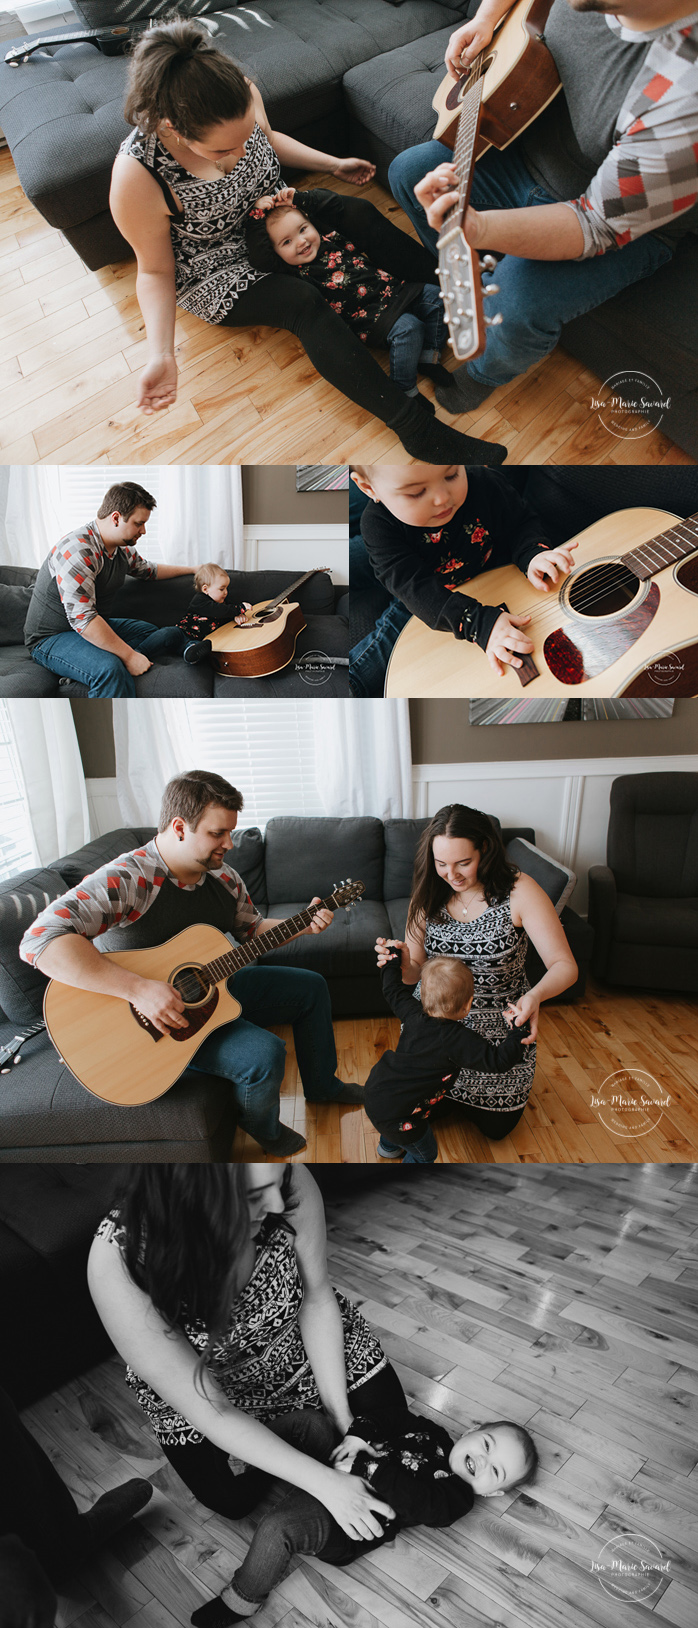 Lifestyle family sessions with guitar. Family photos playing music. Séance familiale lifestyle avec guitare à Montréal